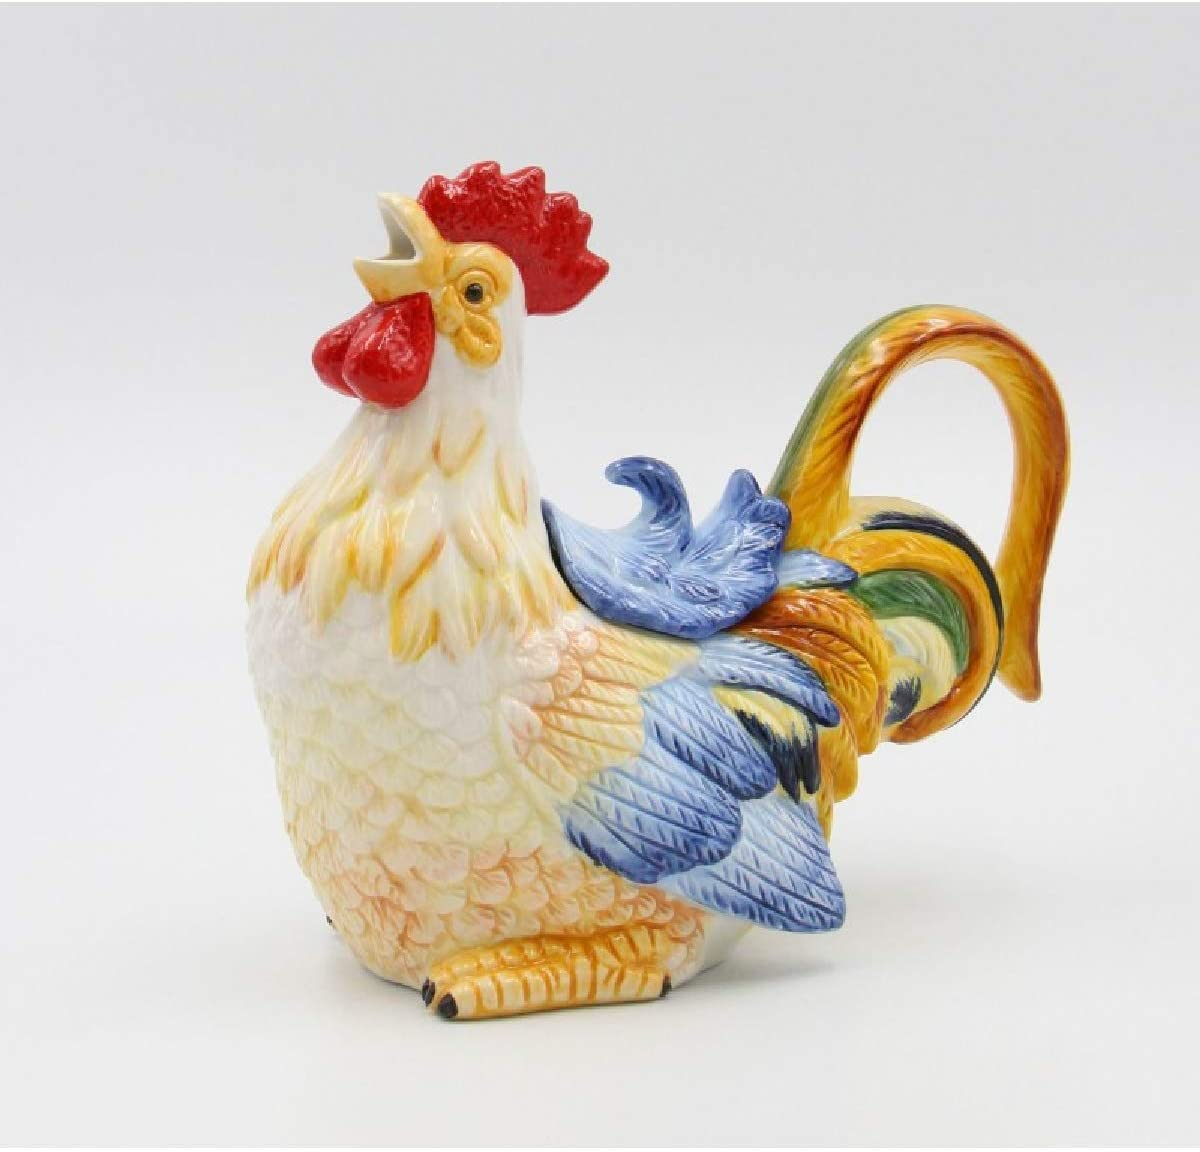 Cosmos Gifts 31984 Rooster Teapot (17 oz), One Size, Yellow